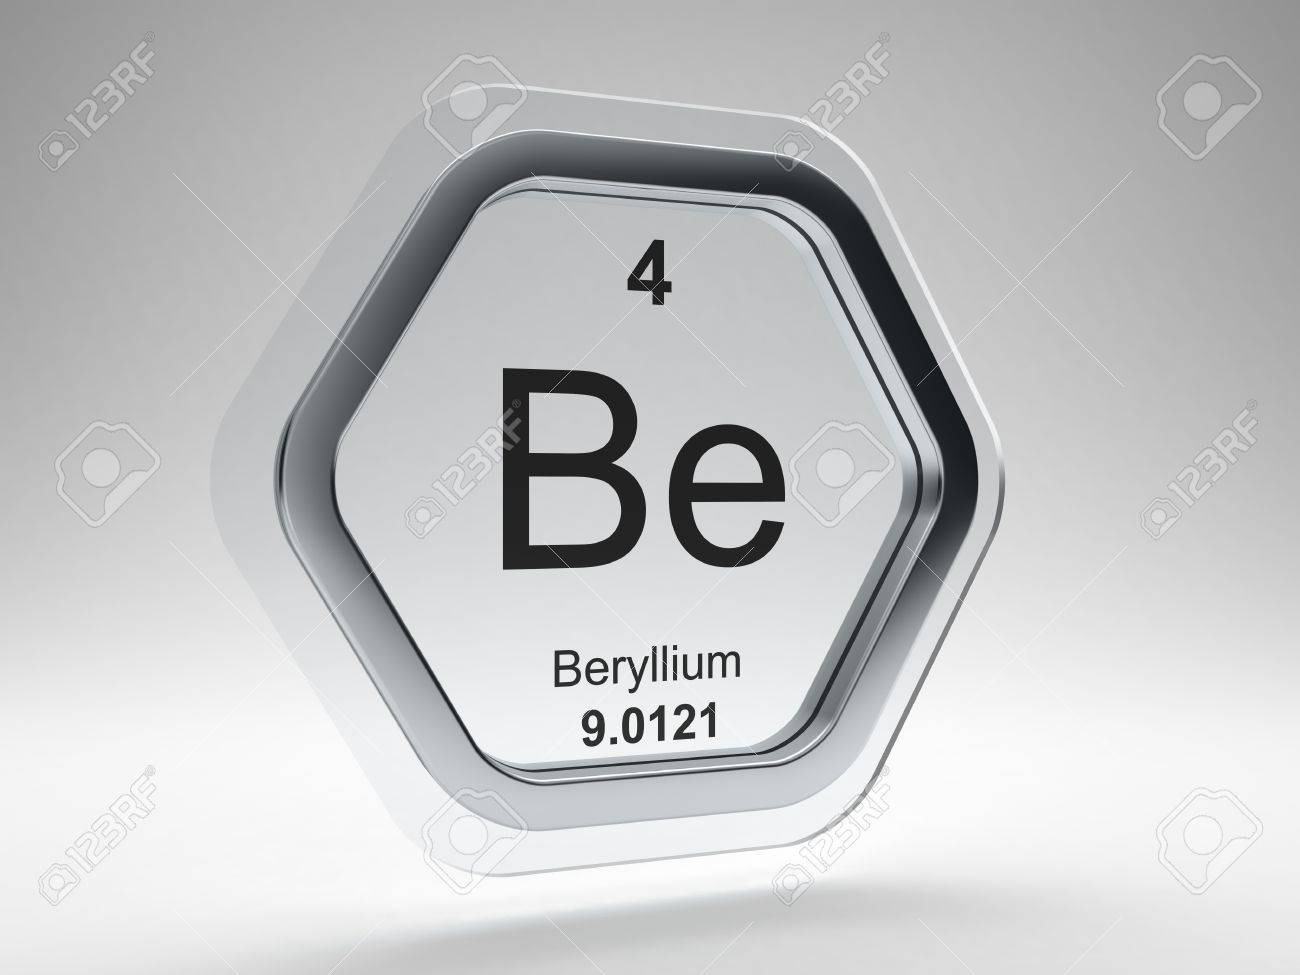 Beryllium symbol on modern glass and steel icon stock photo beryllium symbol on modern glass and steel icon stock photo 74699654 buycottarizona Image collections